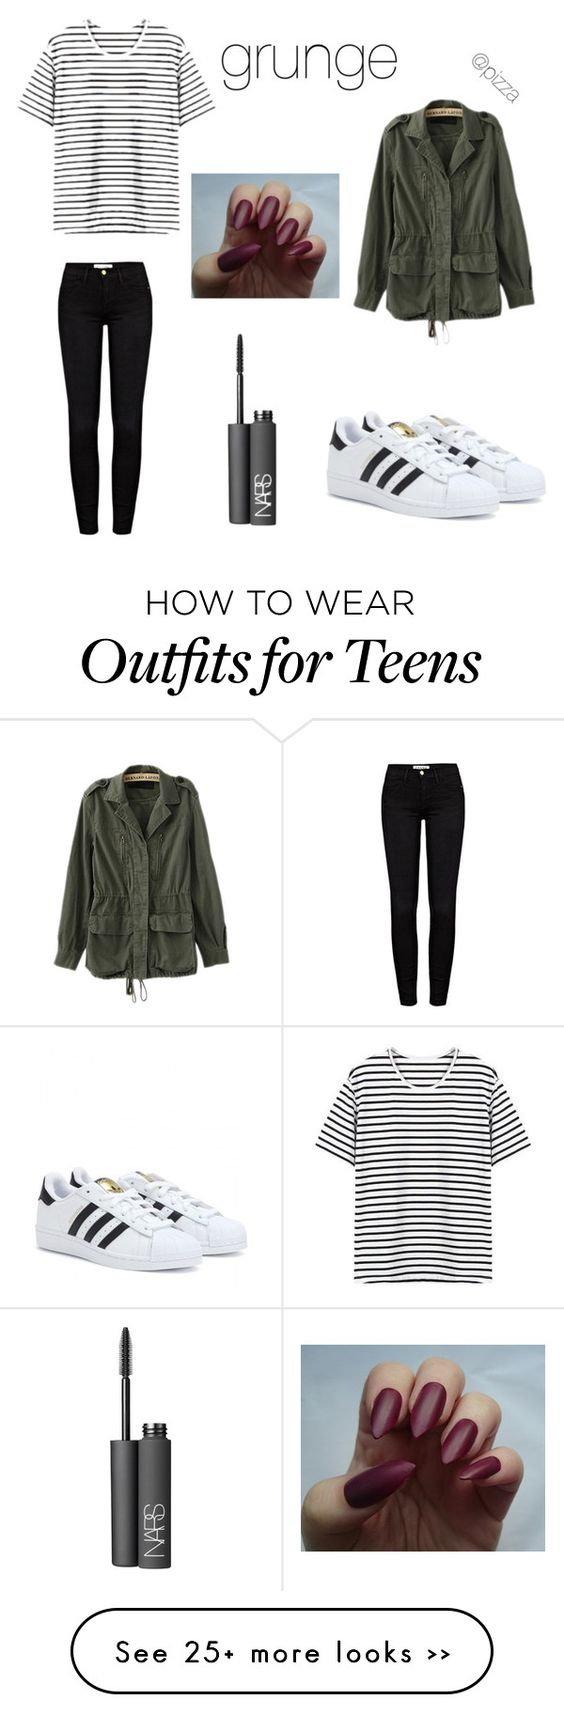 """grunge teens lookbook"" by grungegiiirl on Polyvore"